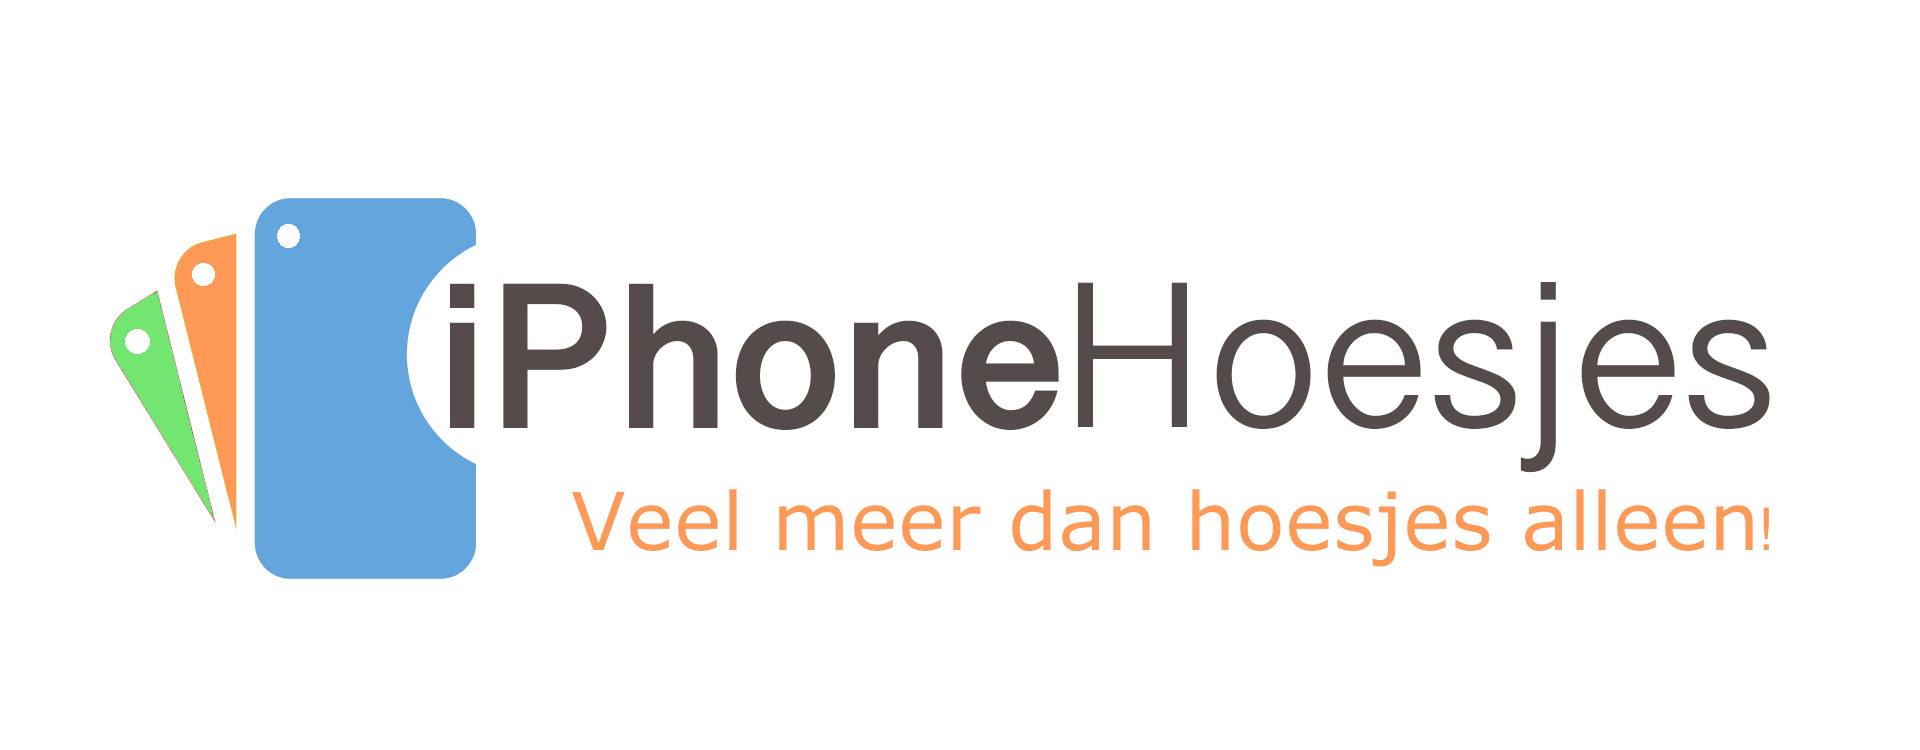 Weetjes over iPhone hoesjes